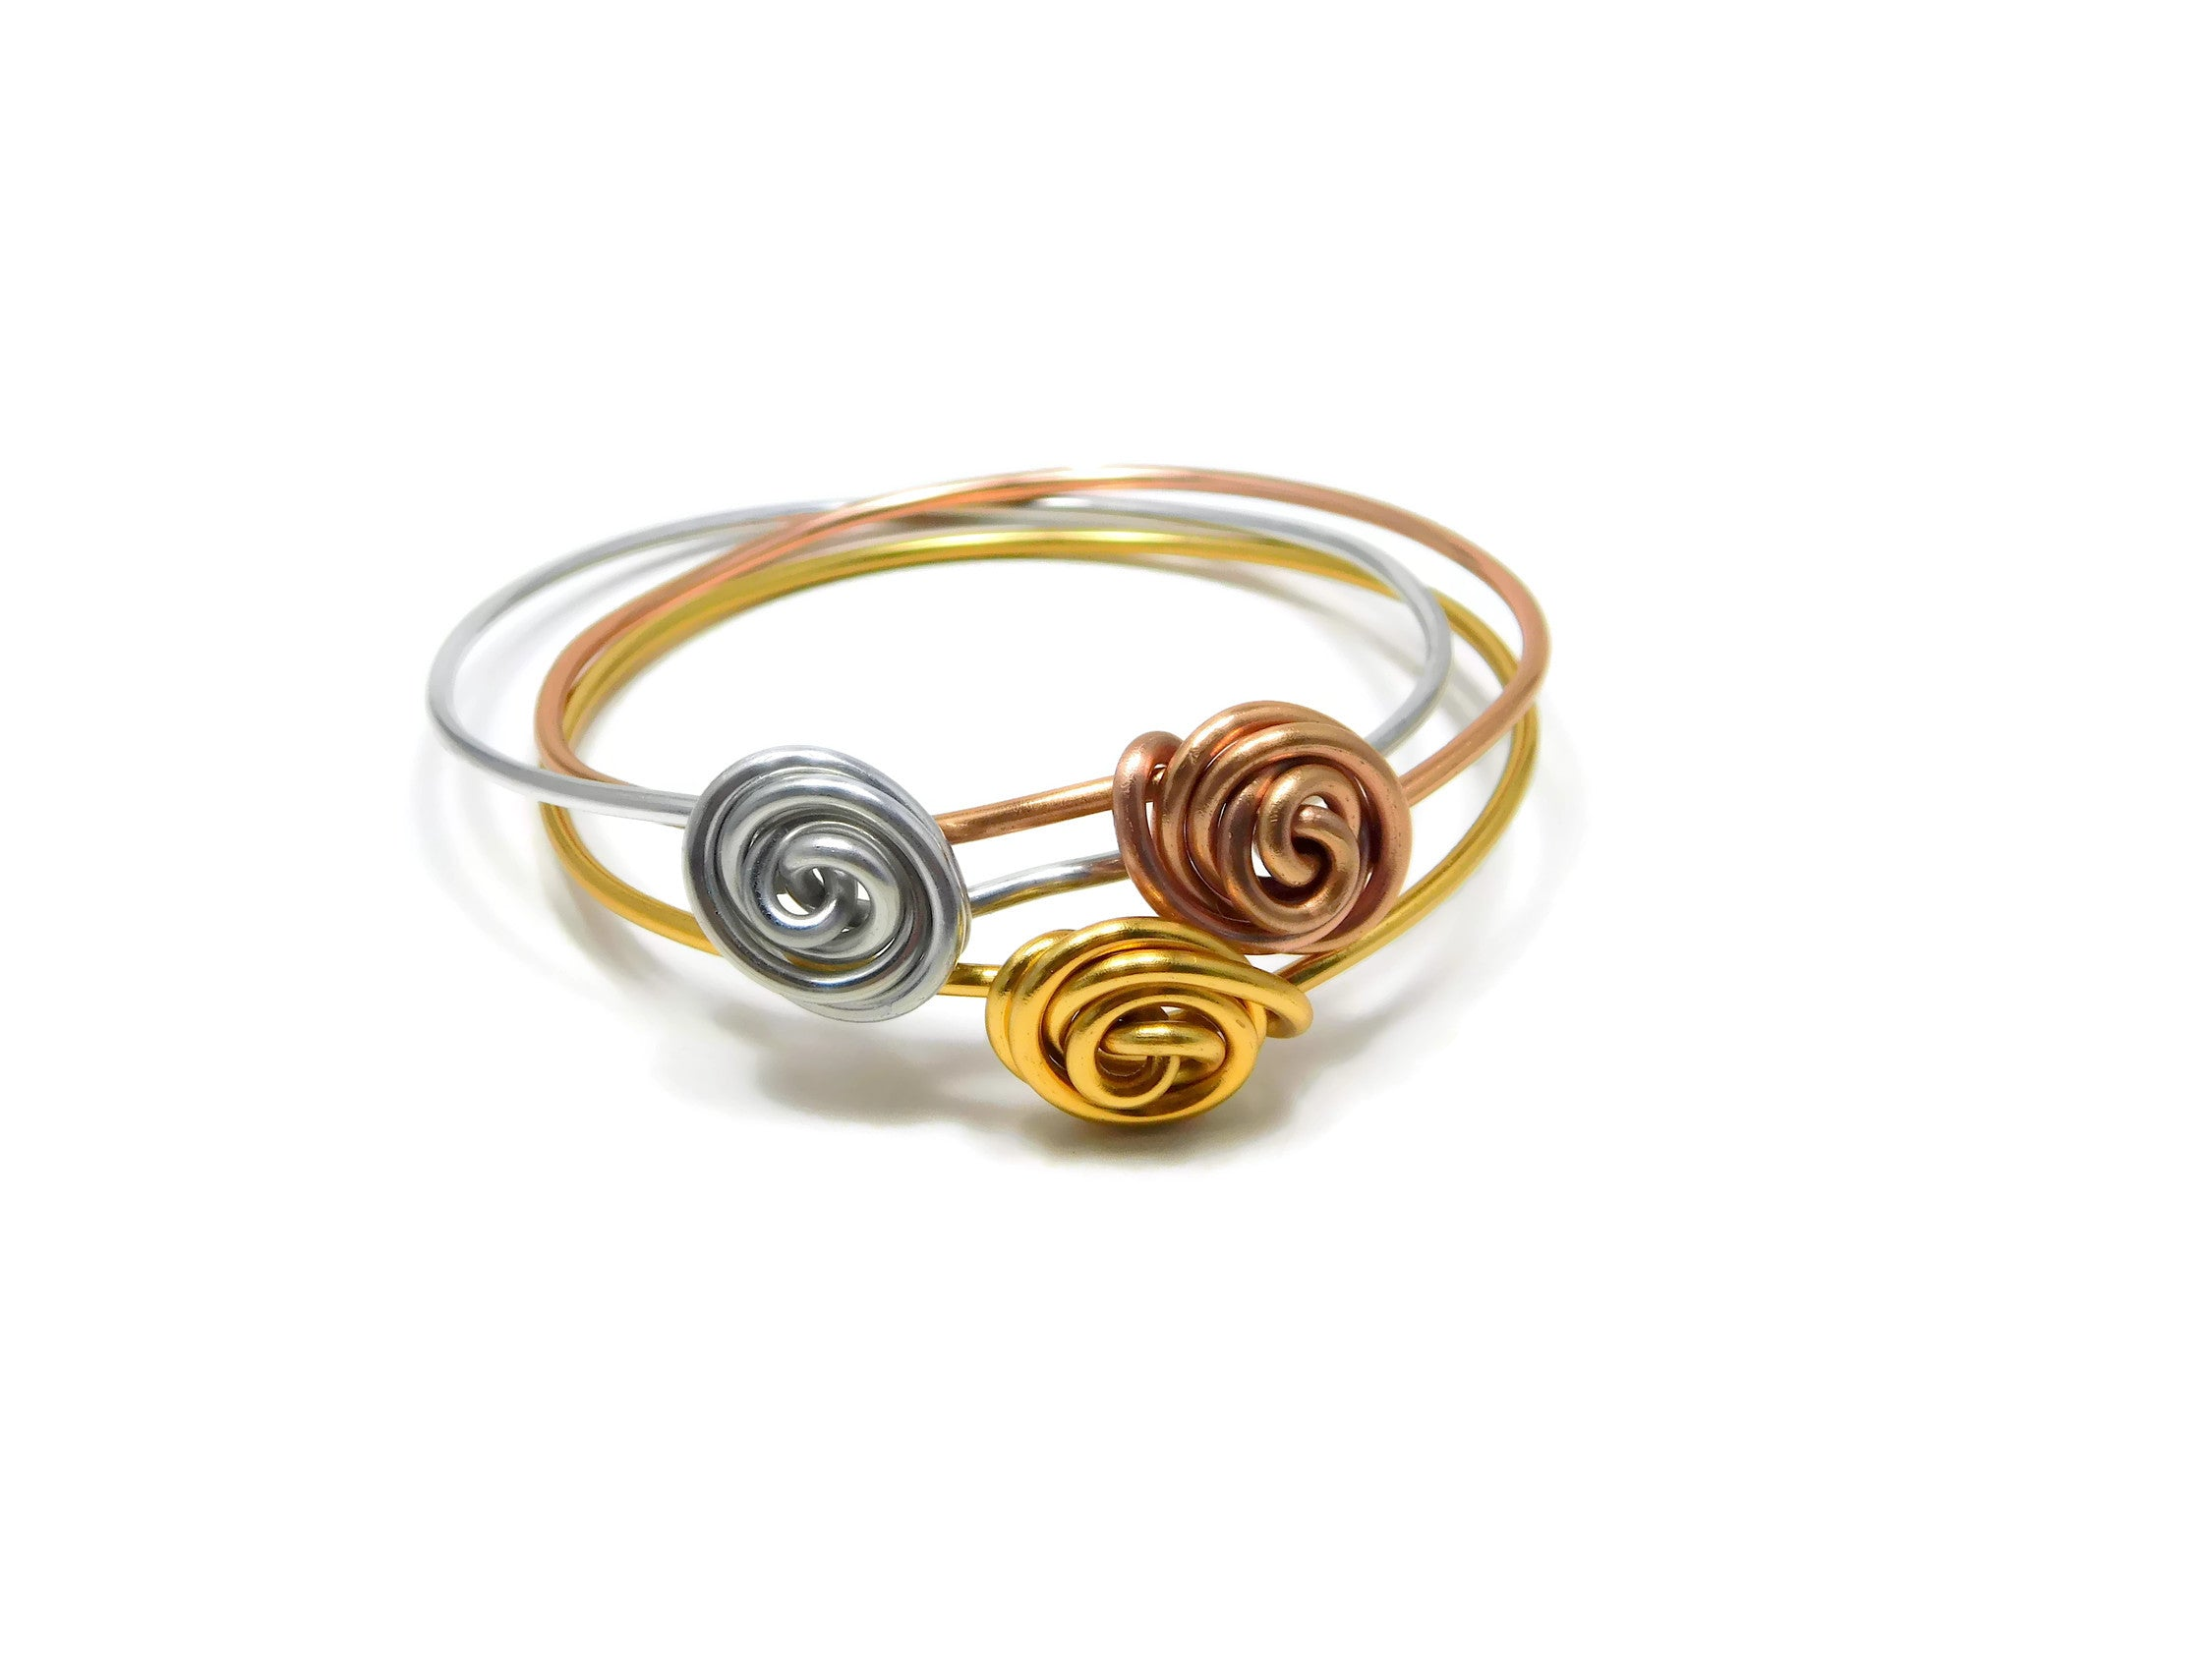 Stackable Rosette Bangle Bracelet DIY Wire Wrapping Kit